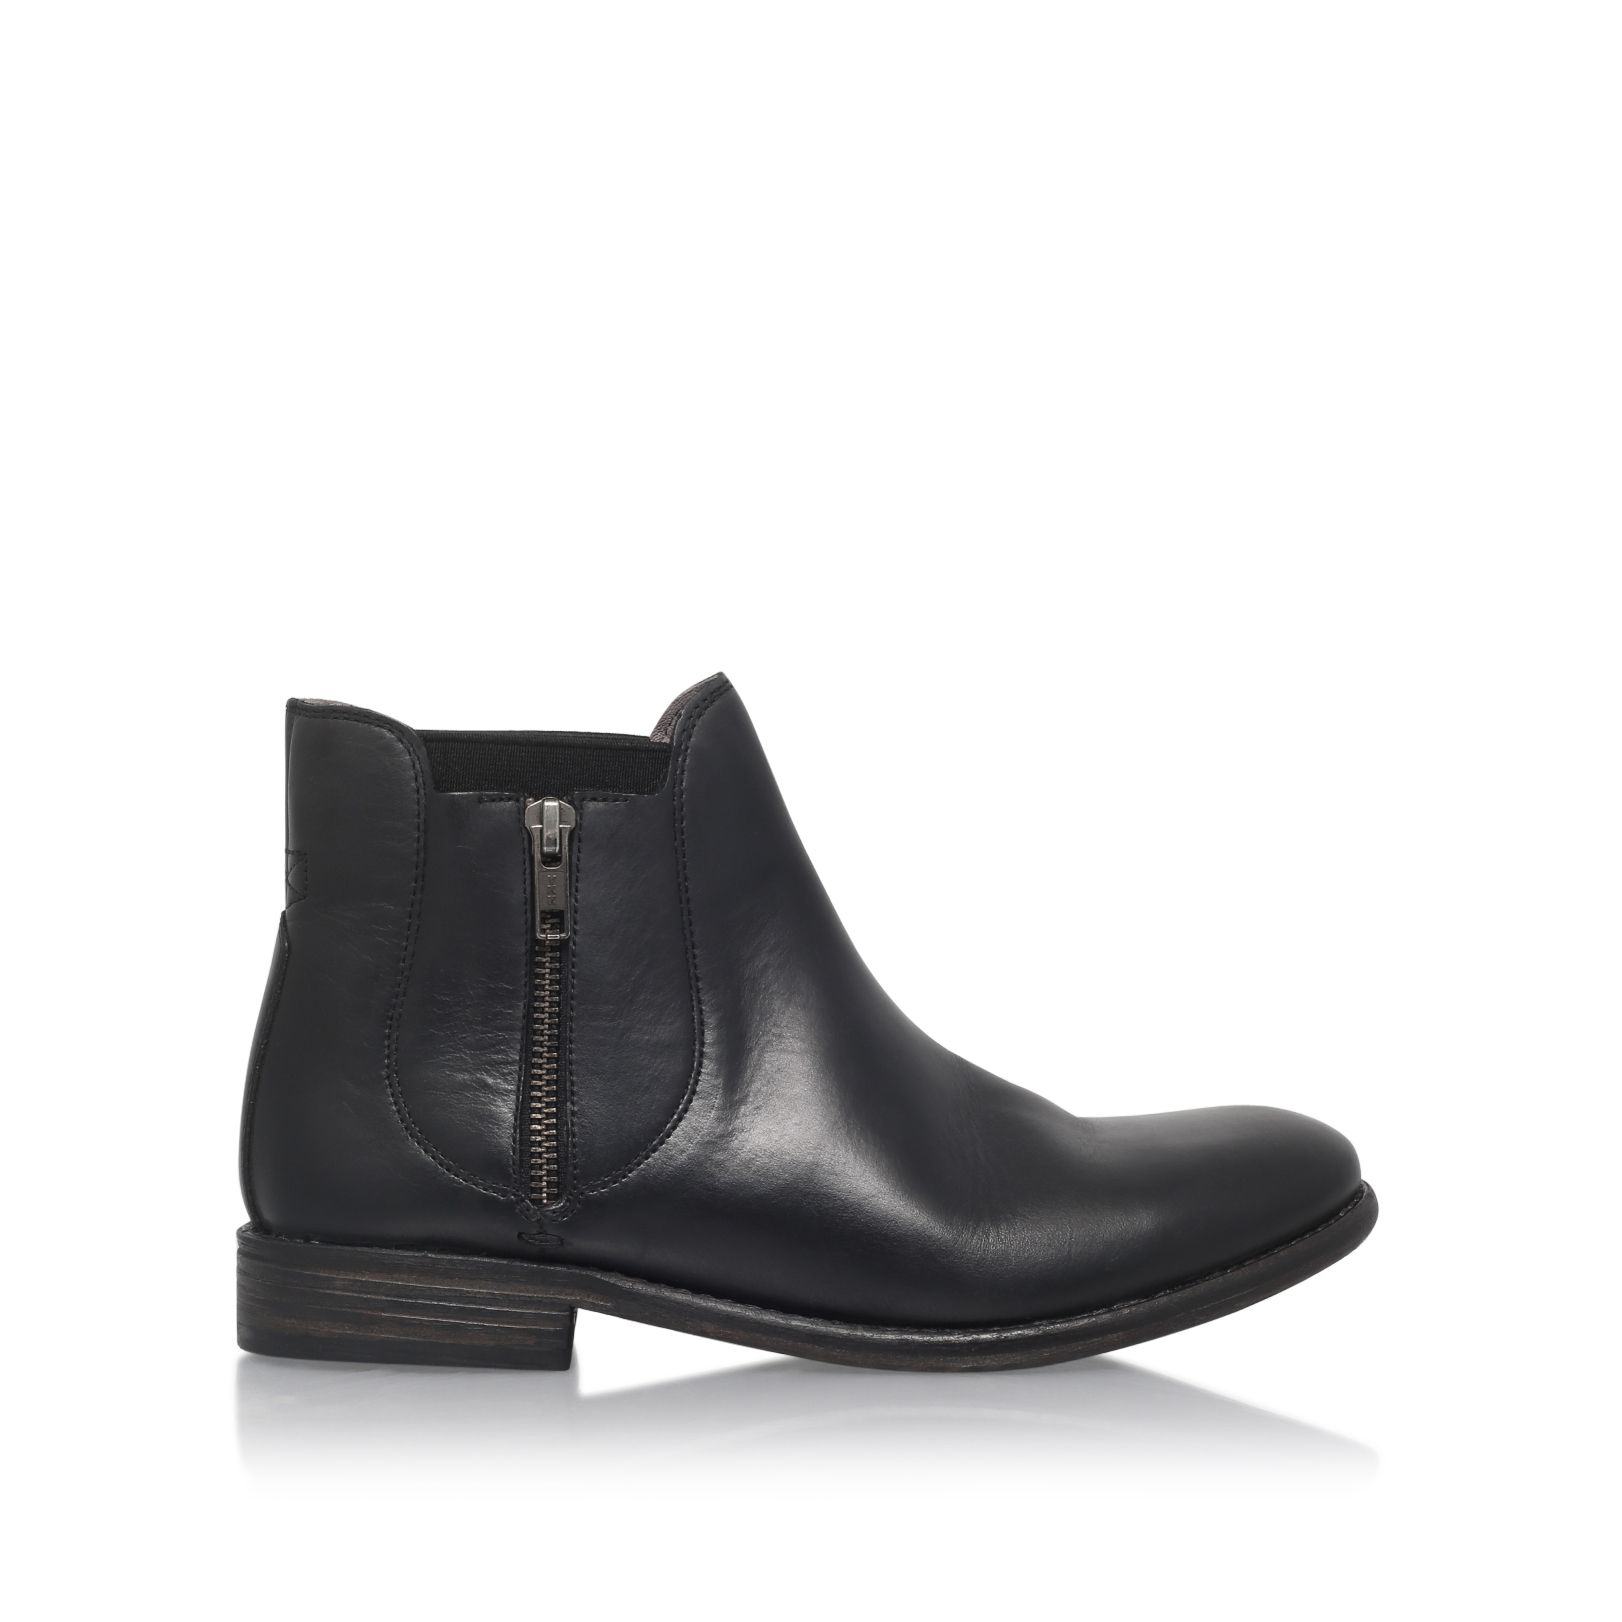 h by hudson algoma low heel ankle boots in black lyst